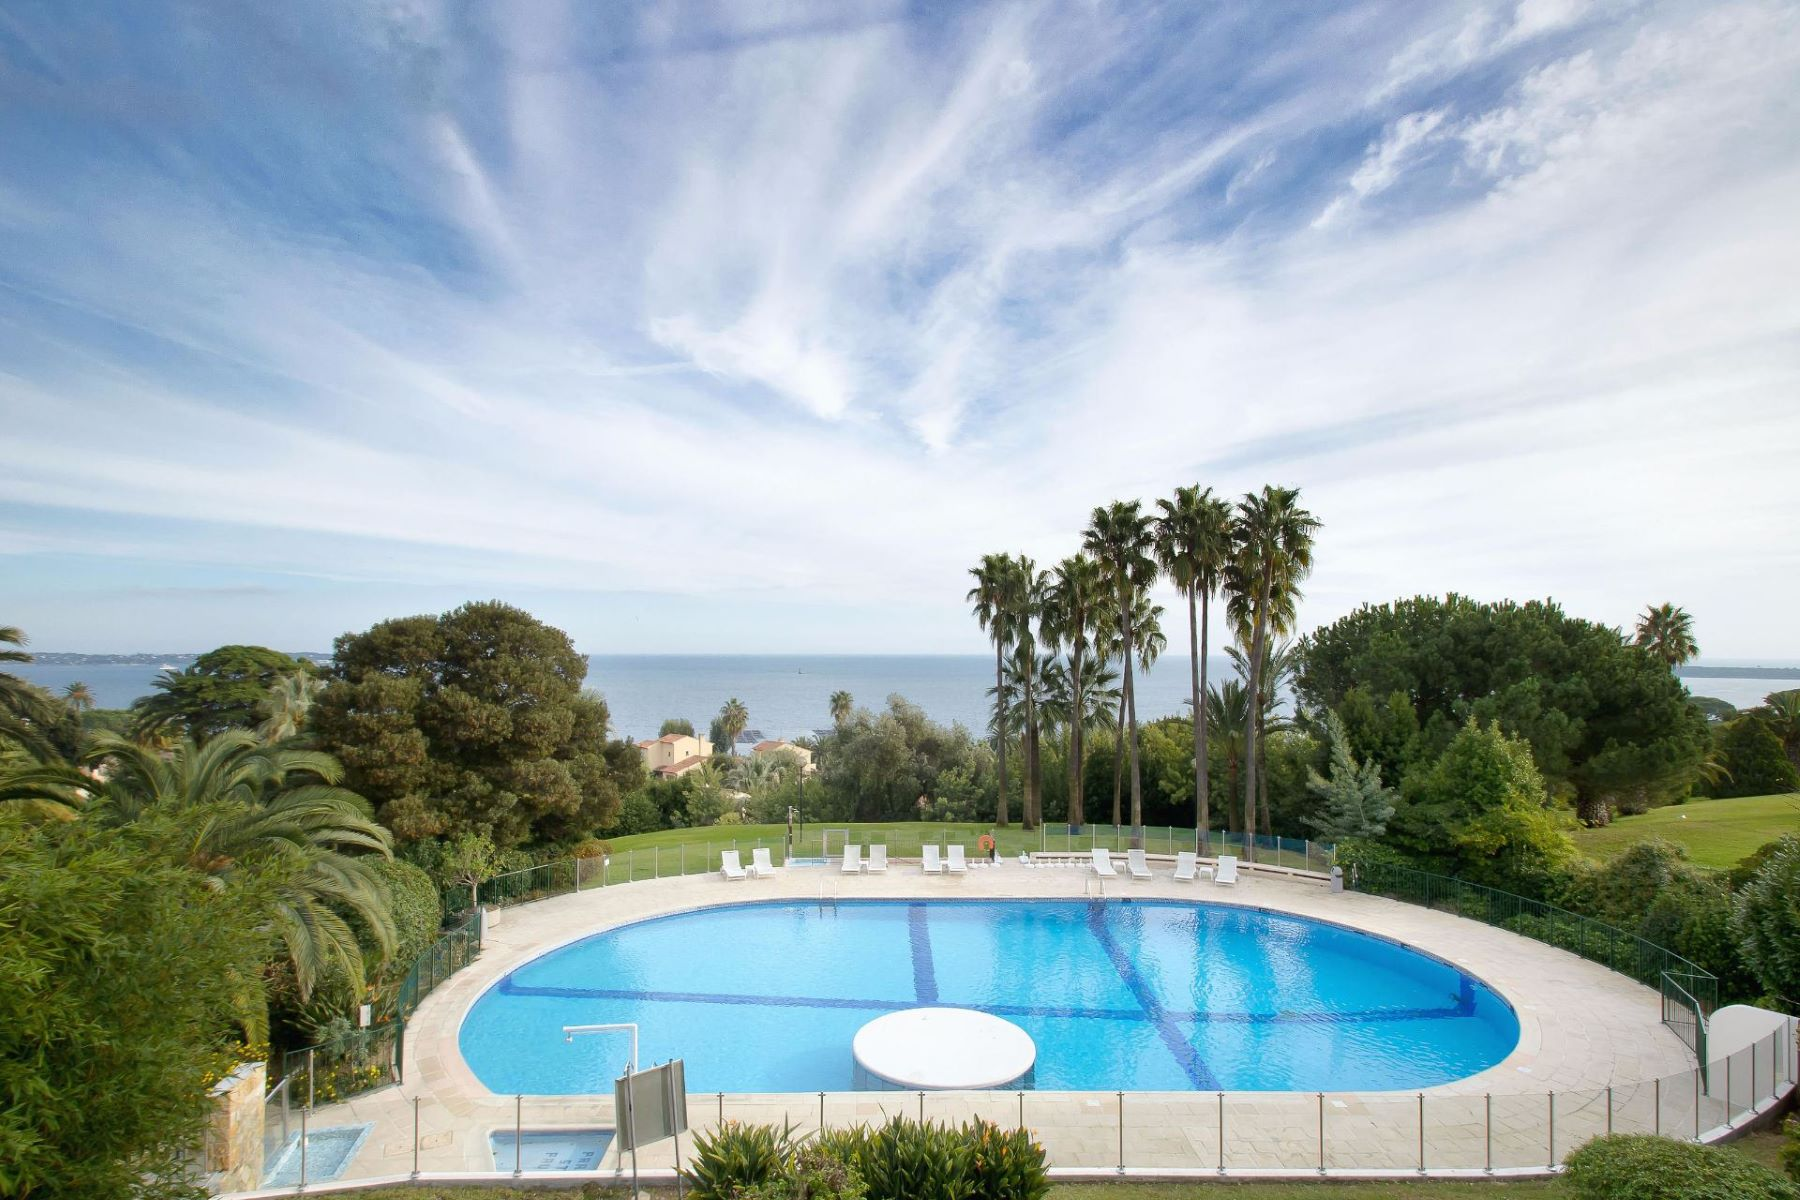 Einfamilienhaus für Verkauf beim Quiet area - Cannes Californie - house for sale in a gated domain - sea views Cannes, Provence-Alpes-Cote D'Azur, 06400 Frankreich